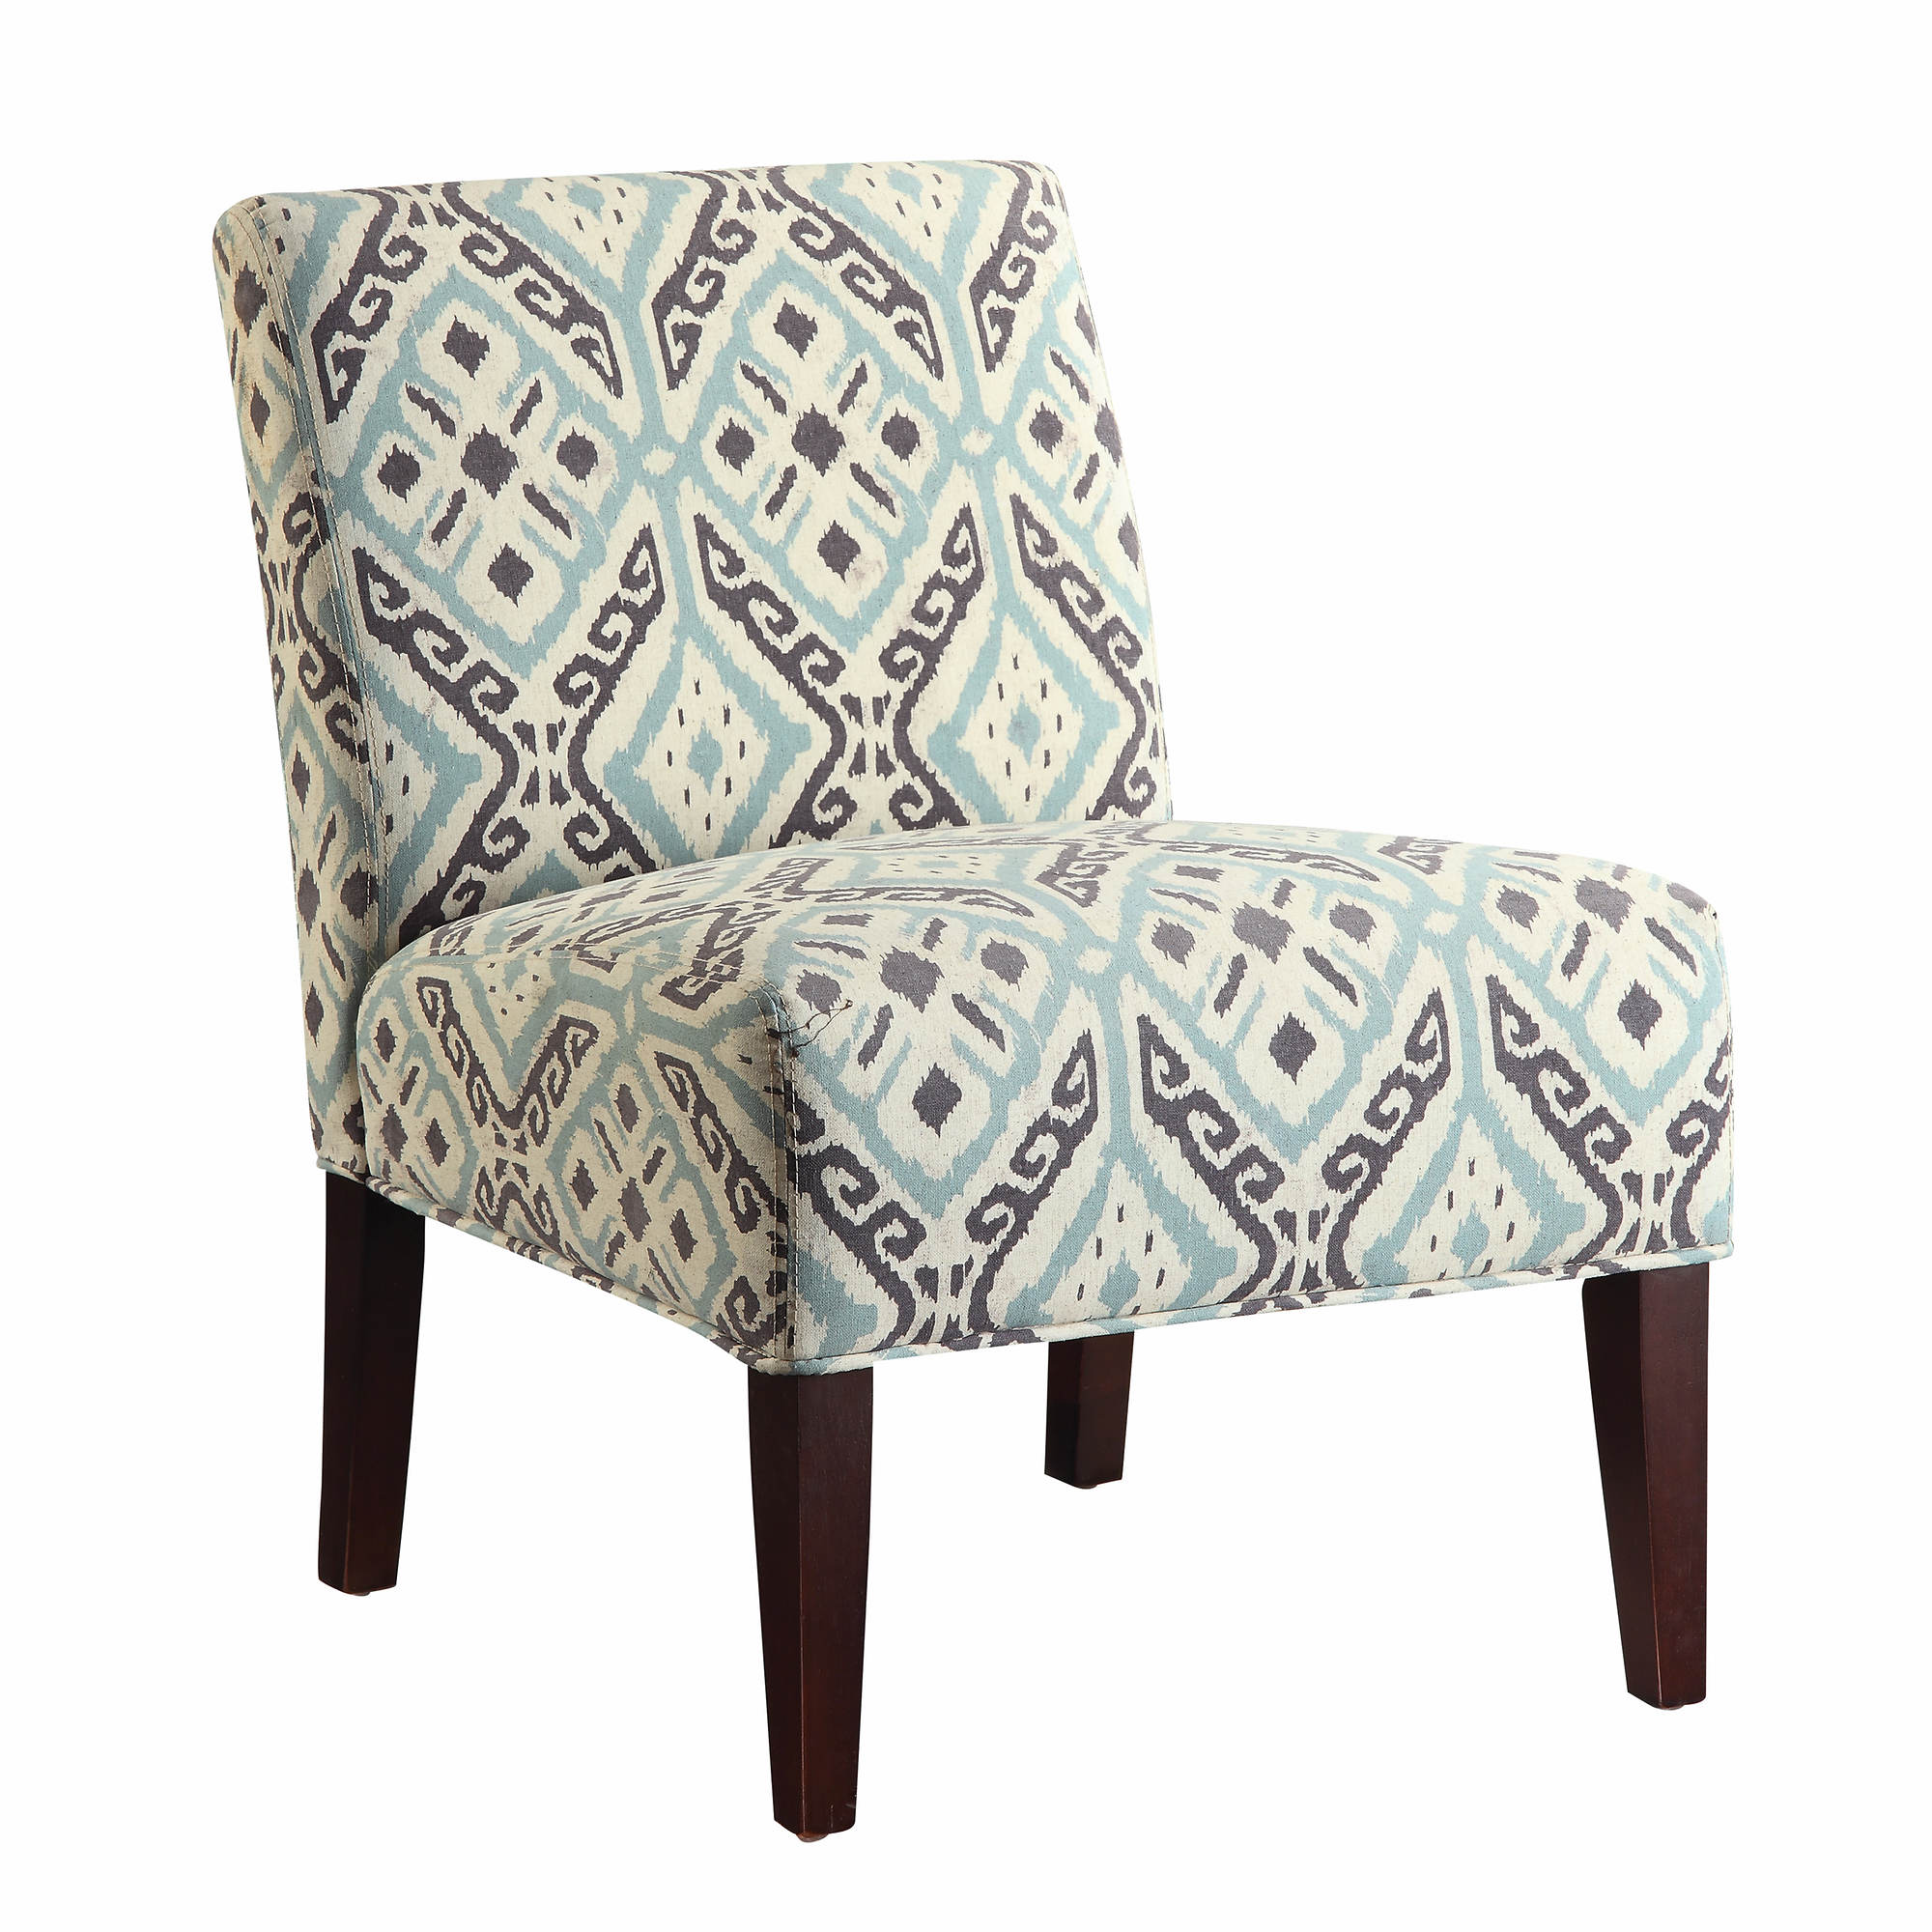 Coaster accent chair beige teal brown bjs wholesale club for Teal and brown chair